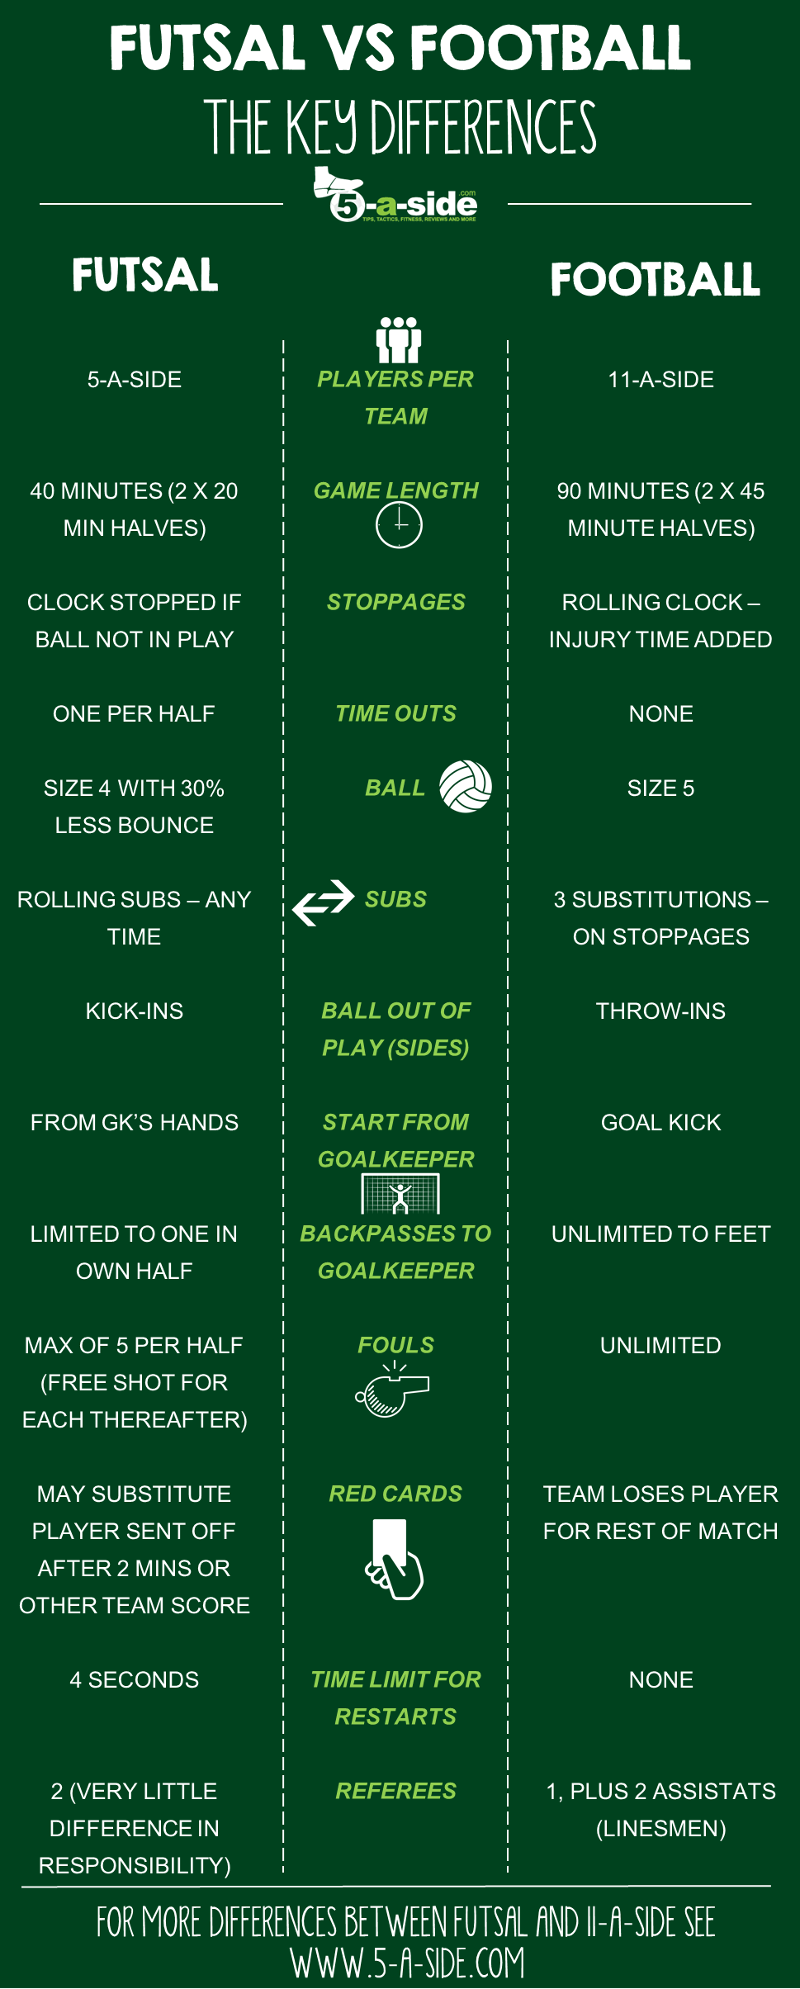 Futsal rules vs 11-a-side football differences